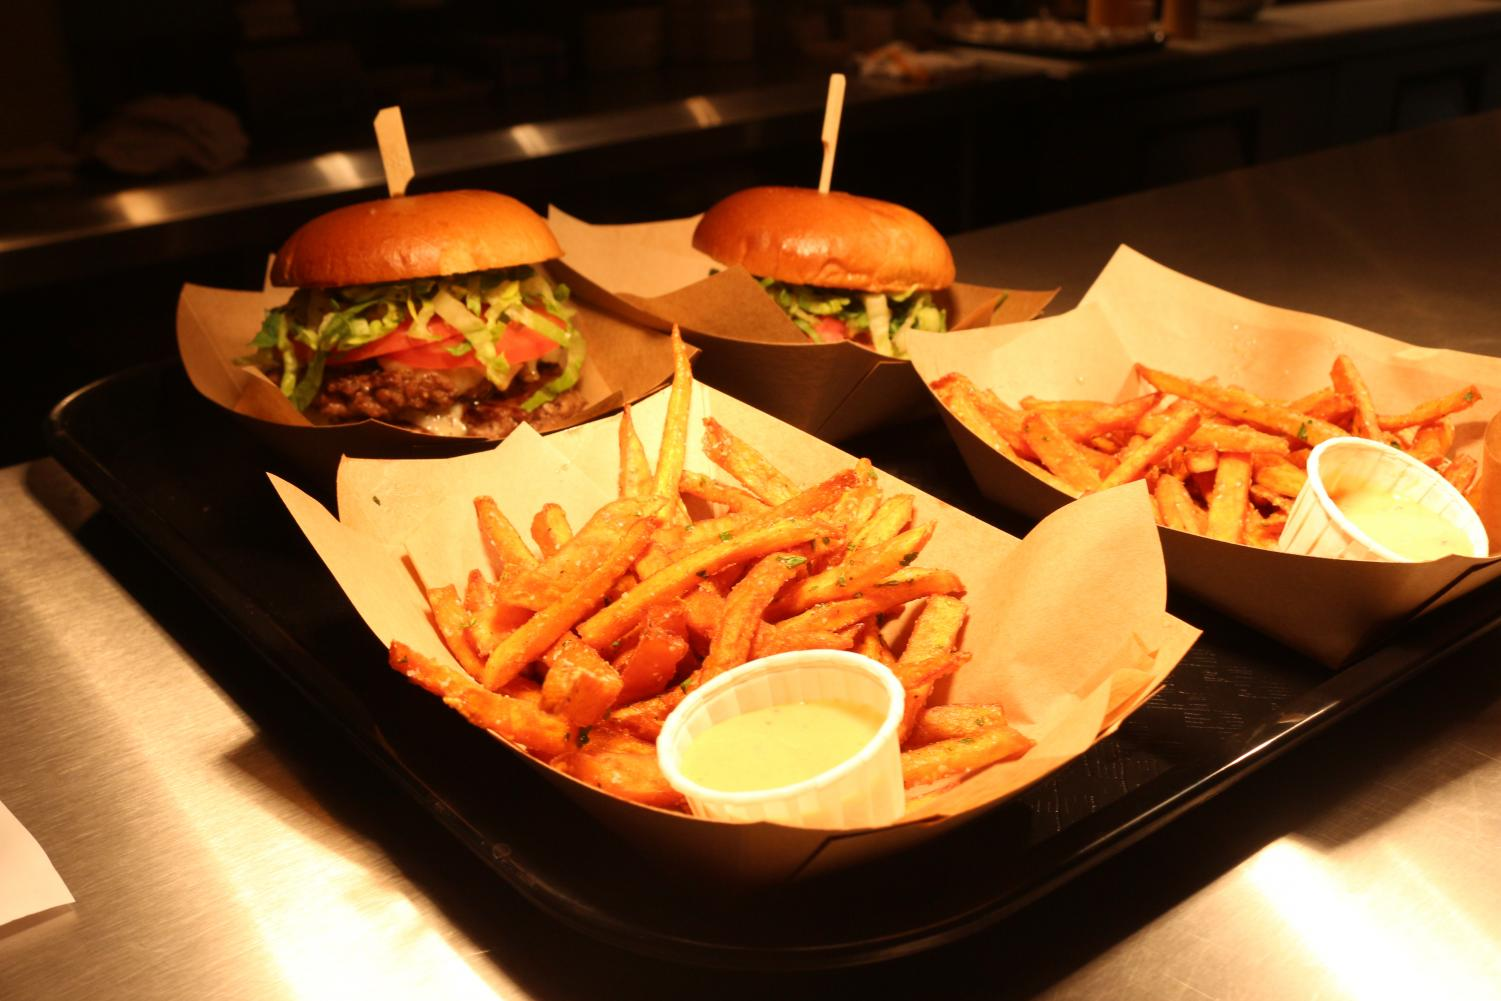 GETTIN' THE GRUB: Lil' Doddy's Classic Cheeseburgers and truffle fries are ready to be served up. The classic cheeseburger comes with lettuce, tomato, cheese, and an option of one or two quarter pound patties, all at the price of around $7, with no add-ins.